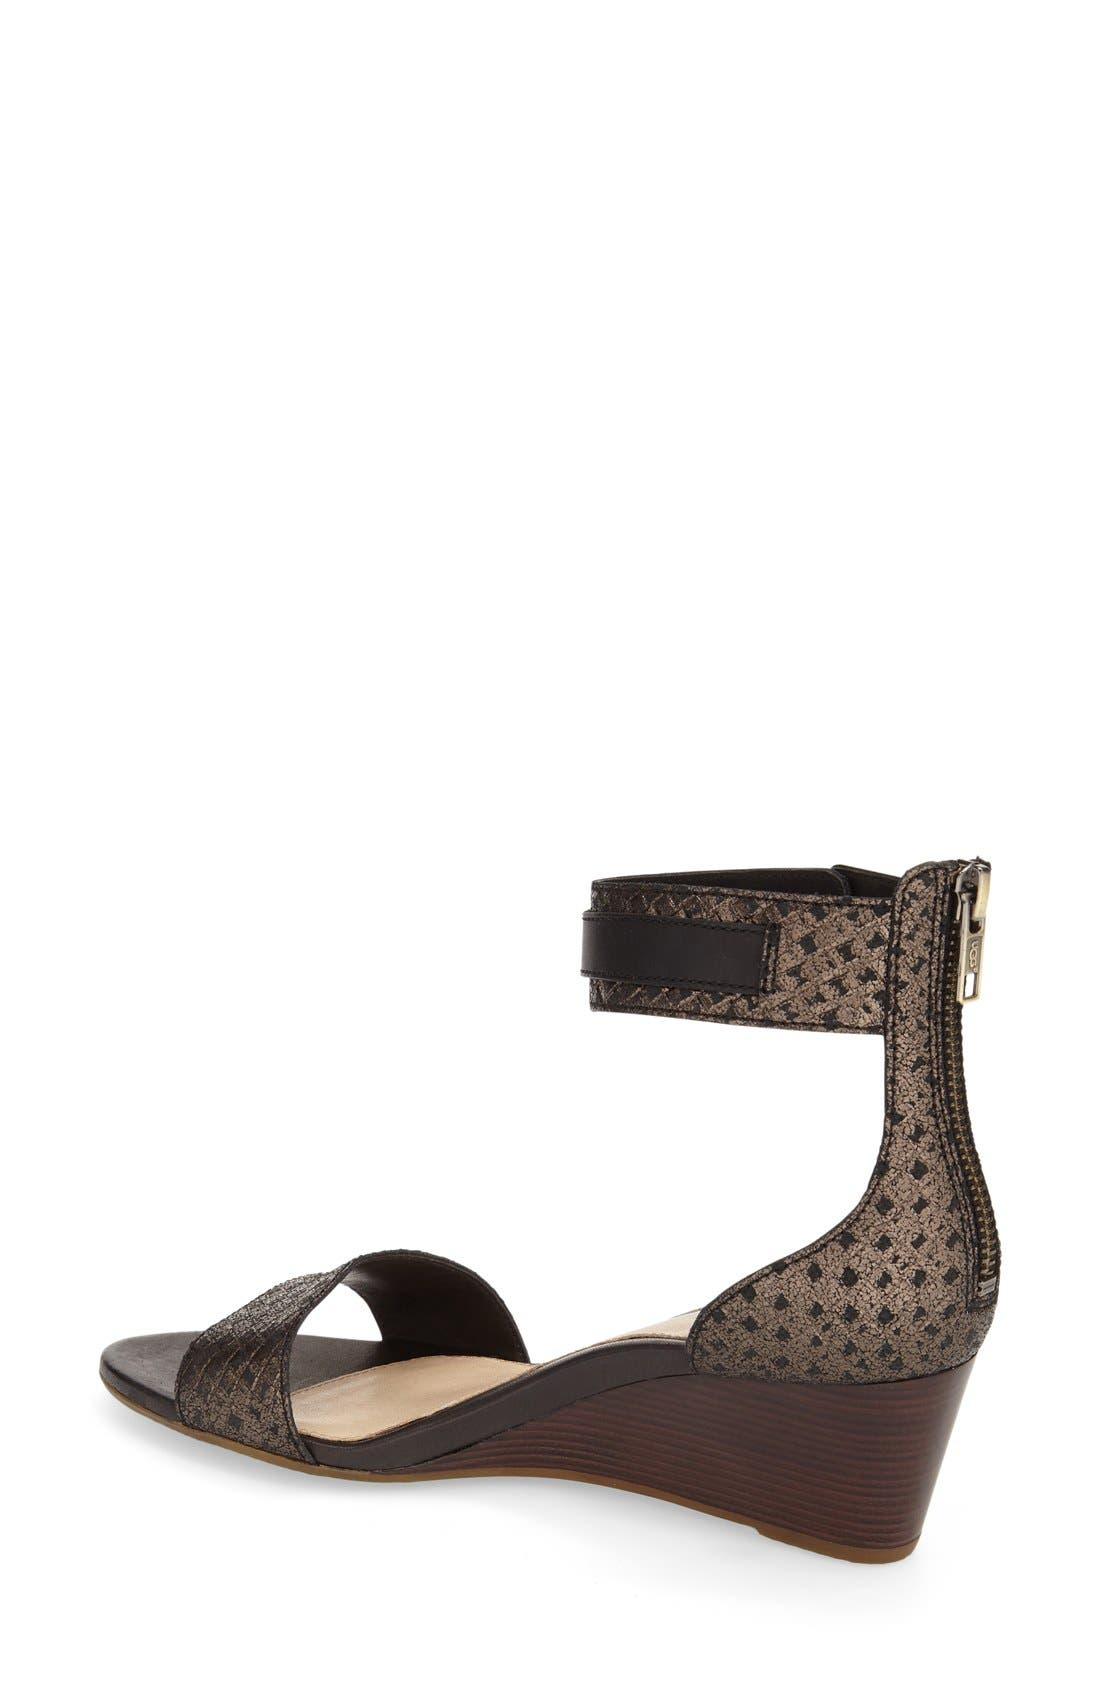 UGG<SUP>®</SUP>, 'Char' Ankle Strap Wedge Sandal, Alternate thumbnail 2, color, 002